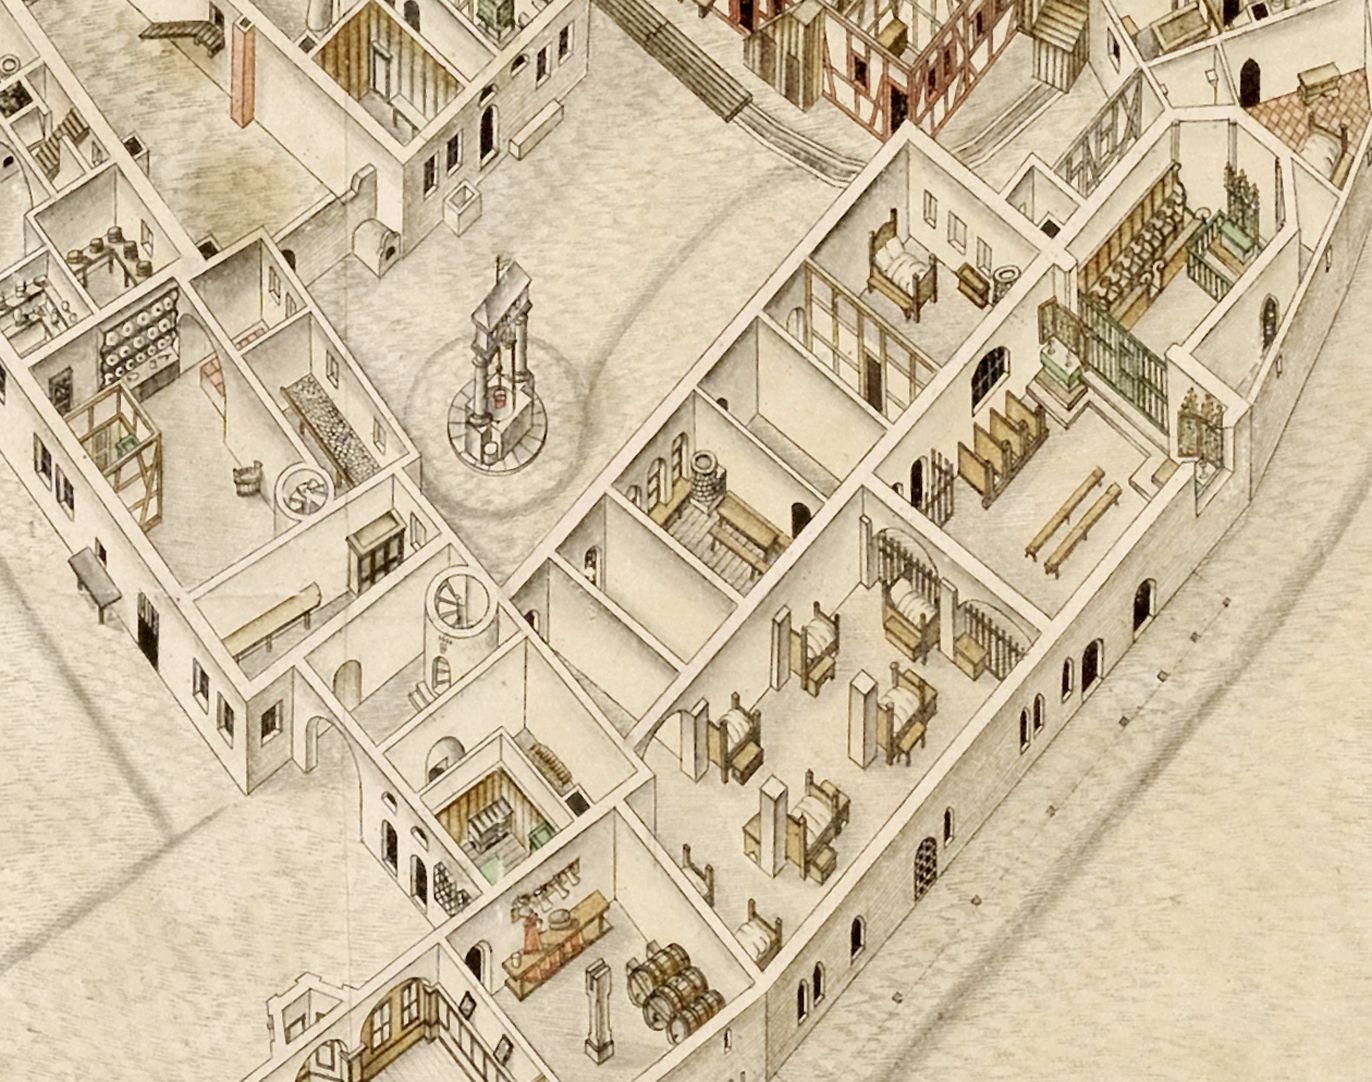 Isometric Picture of the whole plan of the German House in Nuremberg with view into the ground floors Hospice yard with fountain/well, on the right Elisabeth Chapel with its anteroom (beds of the beneficiaries next to the pillars), left of the fountain/well larder and kitchen